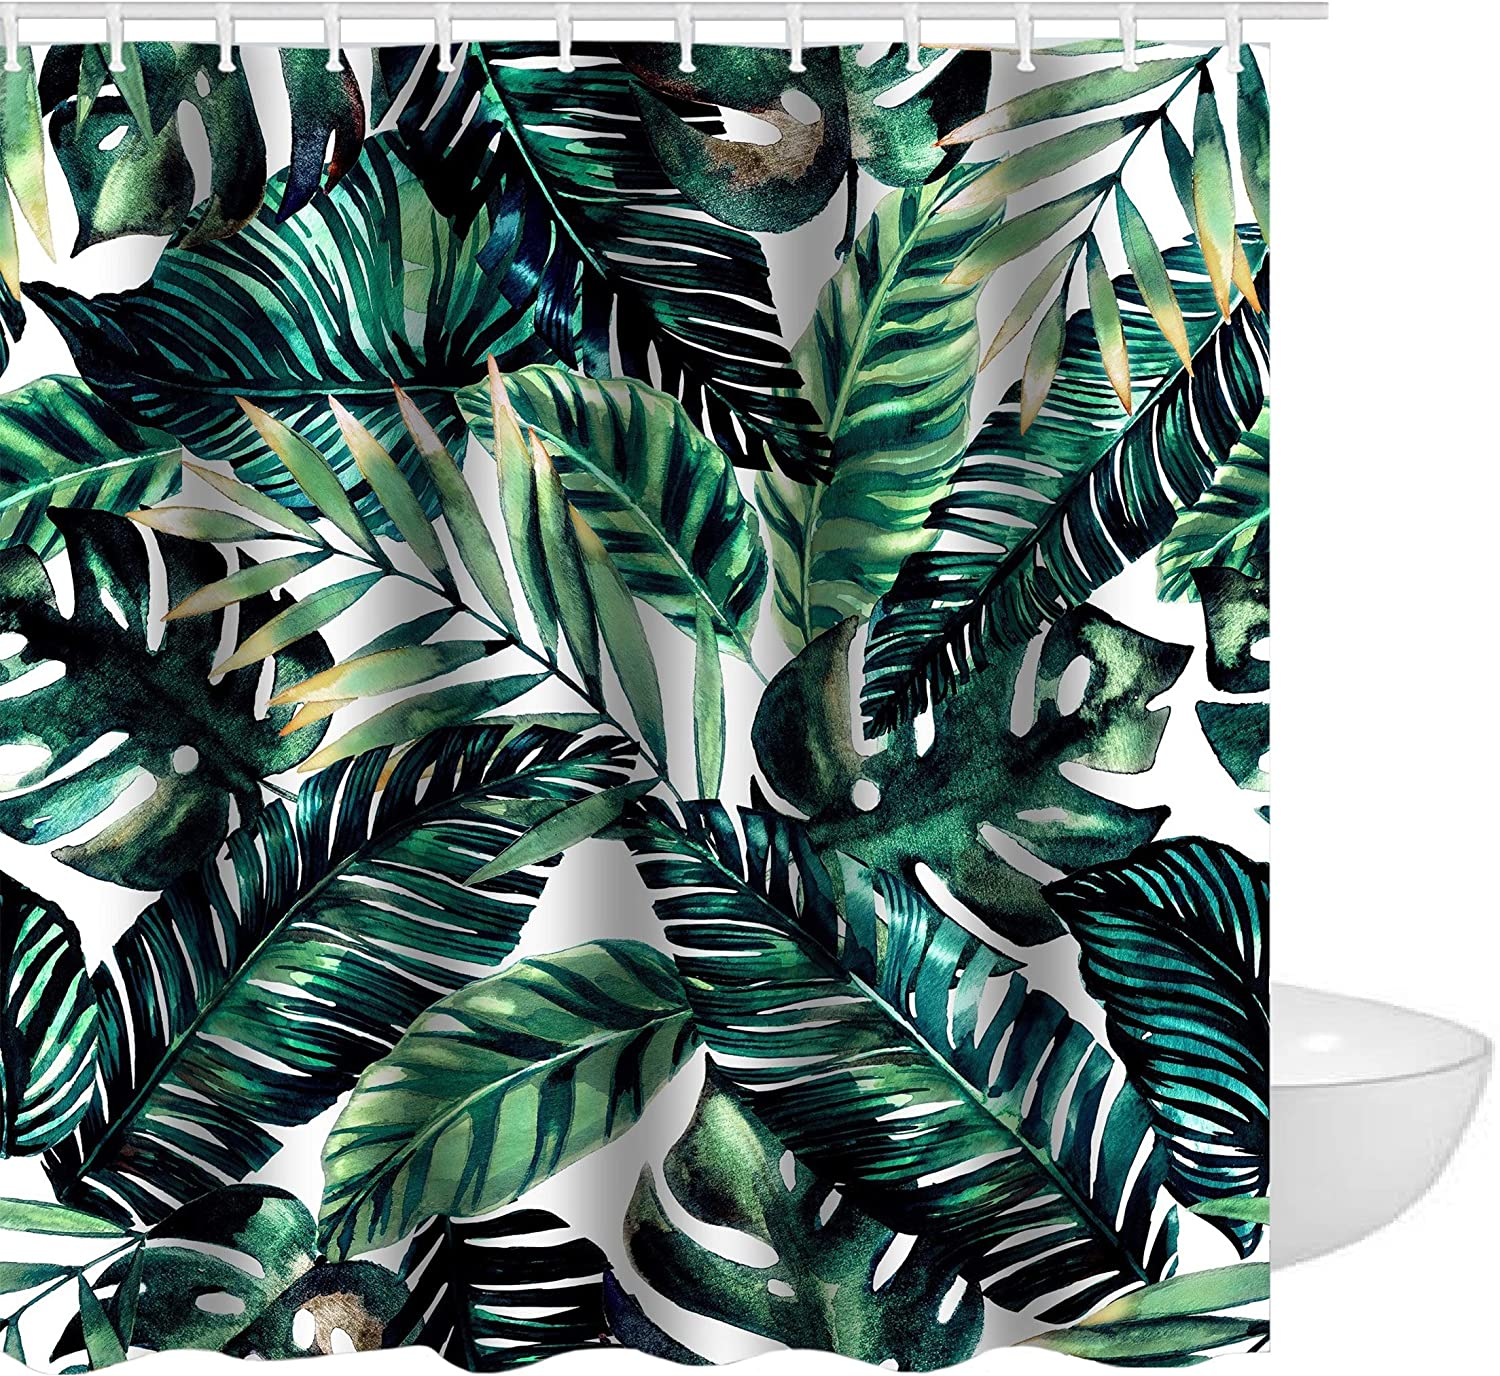 Get Orange Blue Tropical Palm Leaves Decor With Stylish Floral Graphic Waterproof Polyester Fabric Shower Curtain Bathroom Sets Decor with Hooks 72 X 72 Inches